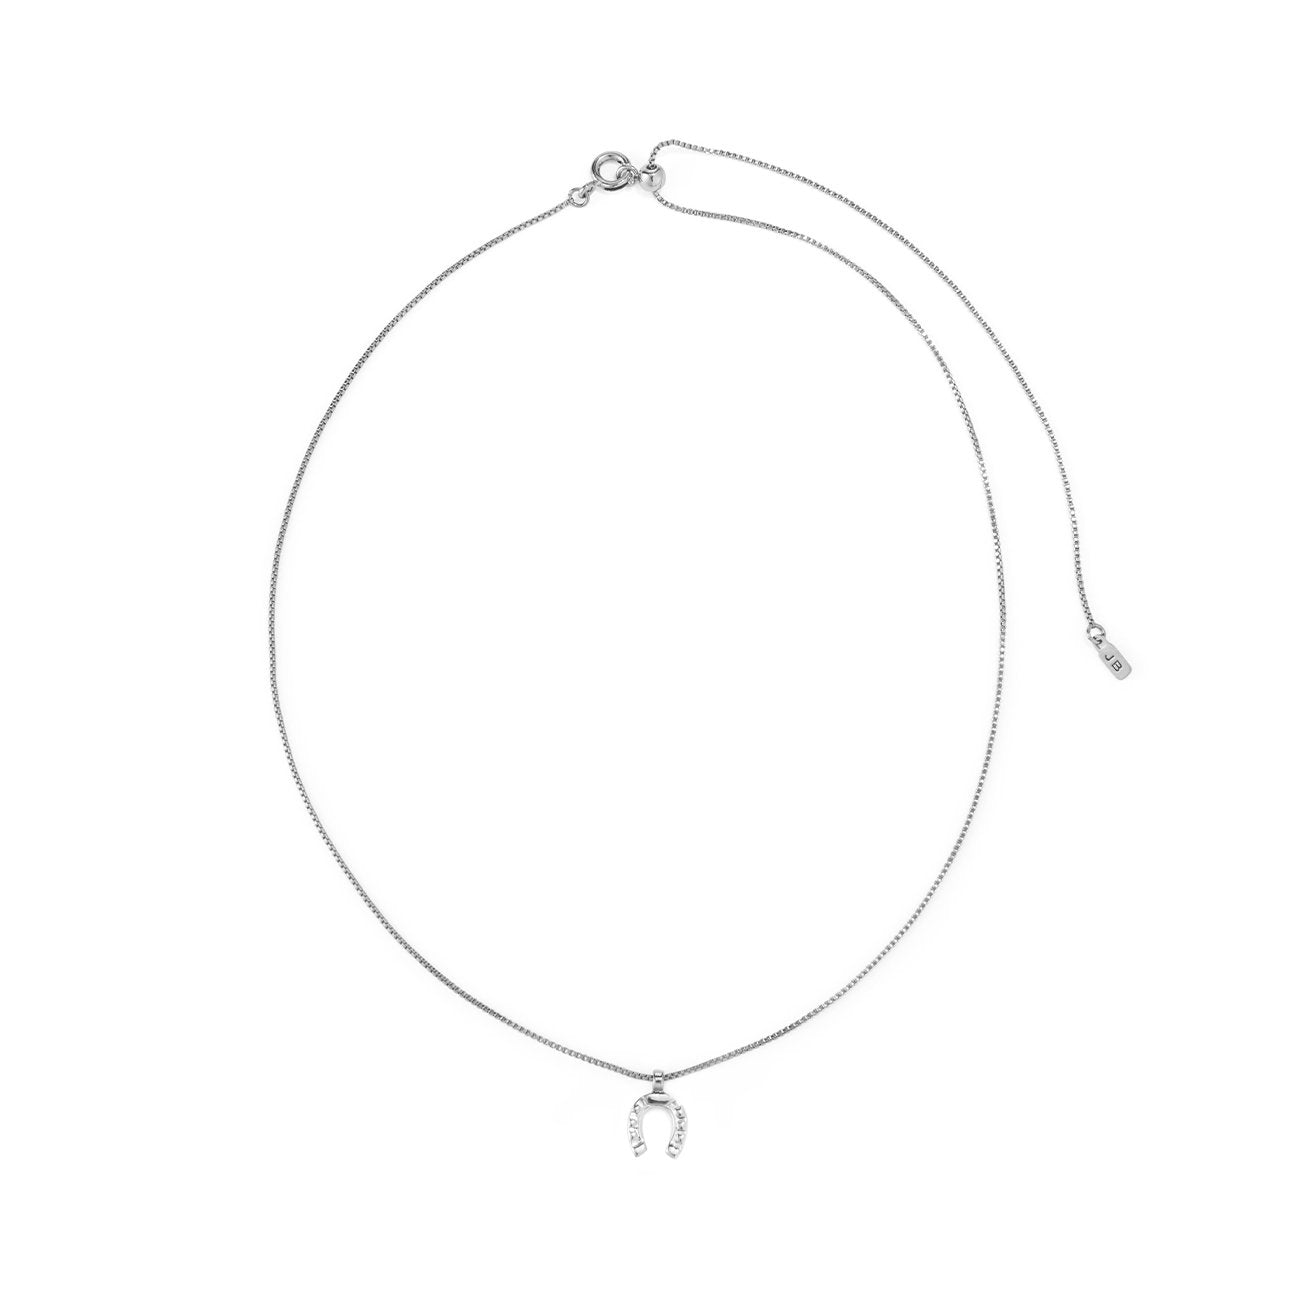 Jenny Bird - Horseshoe Charm Necklace (Silver)